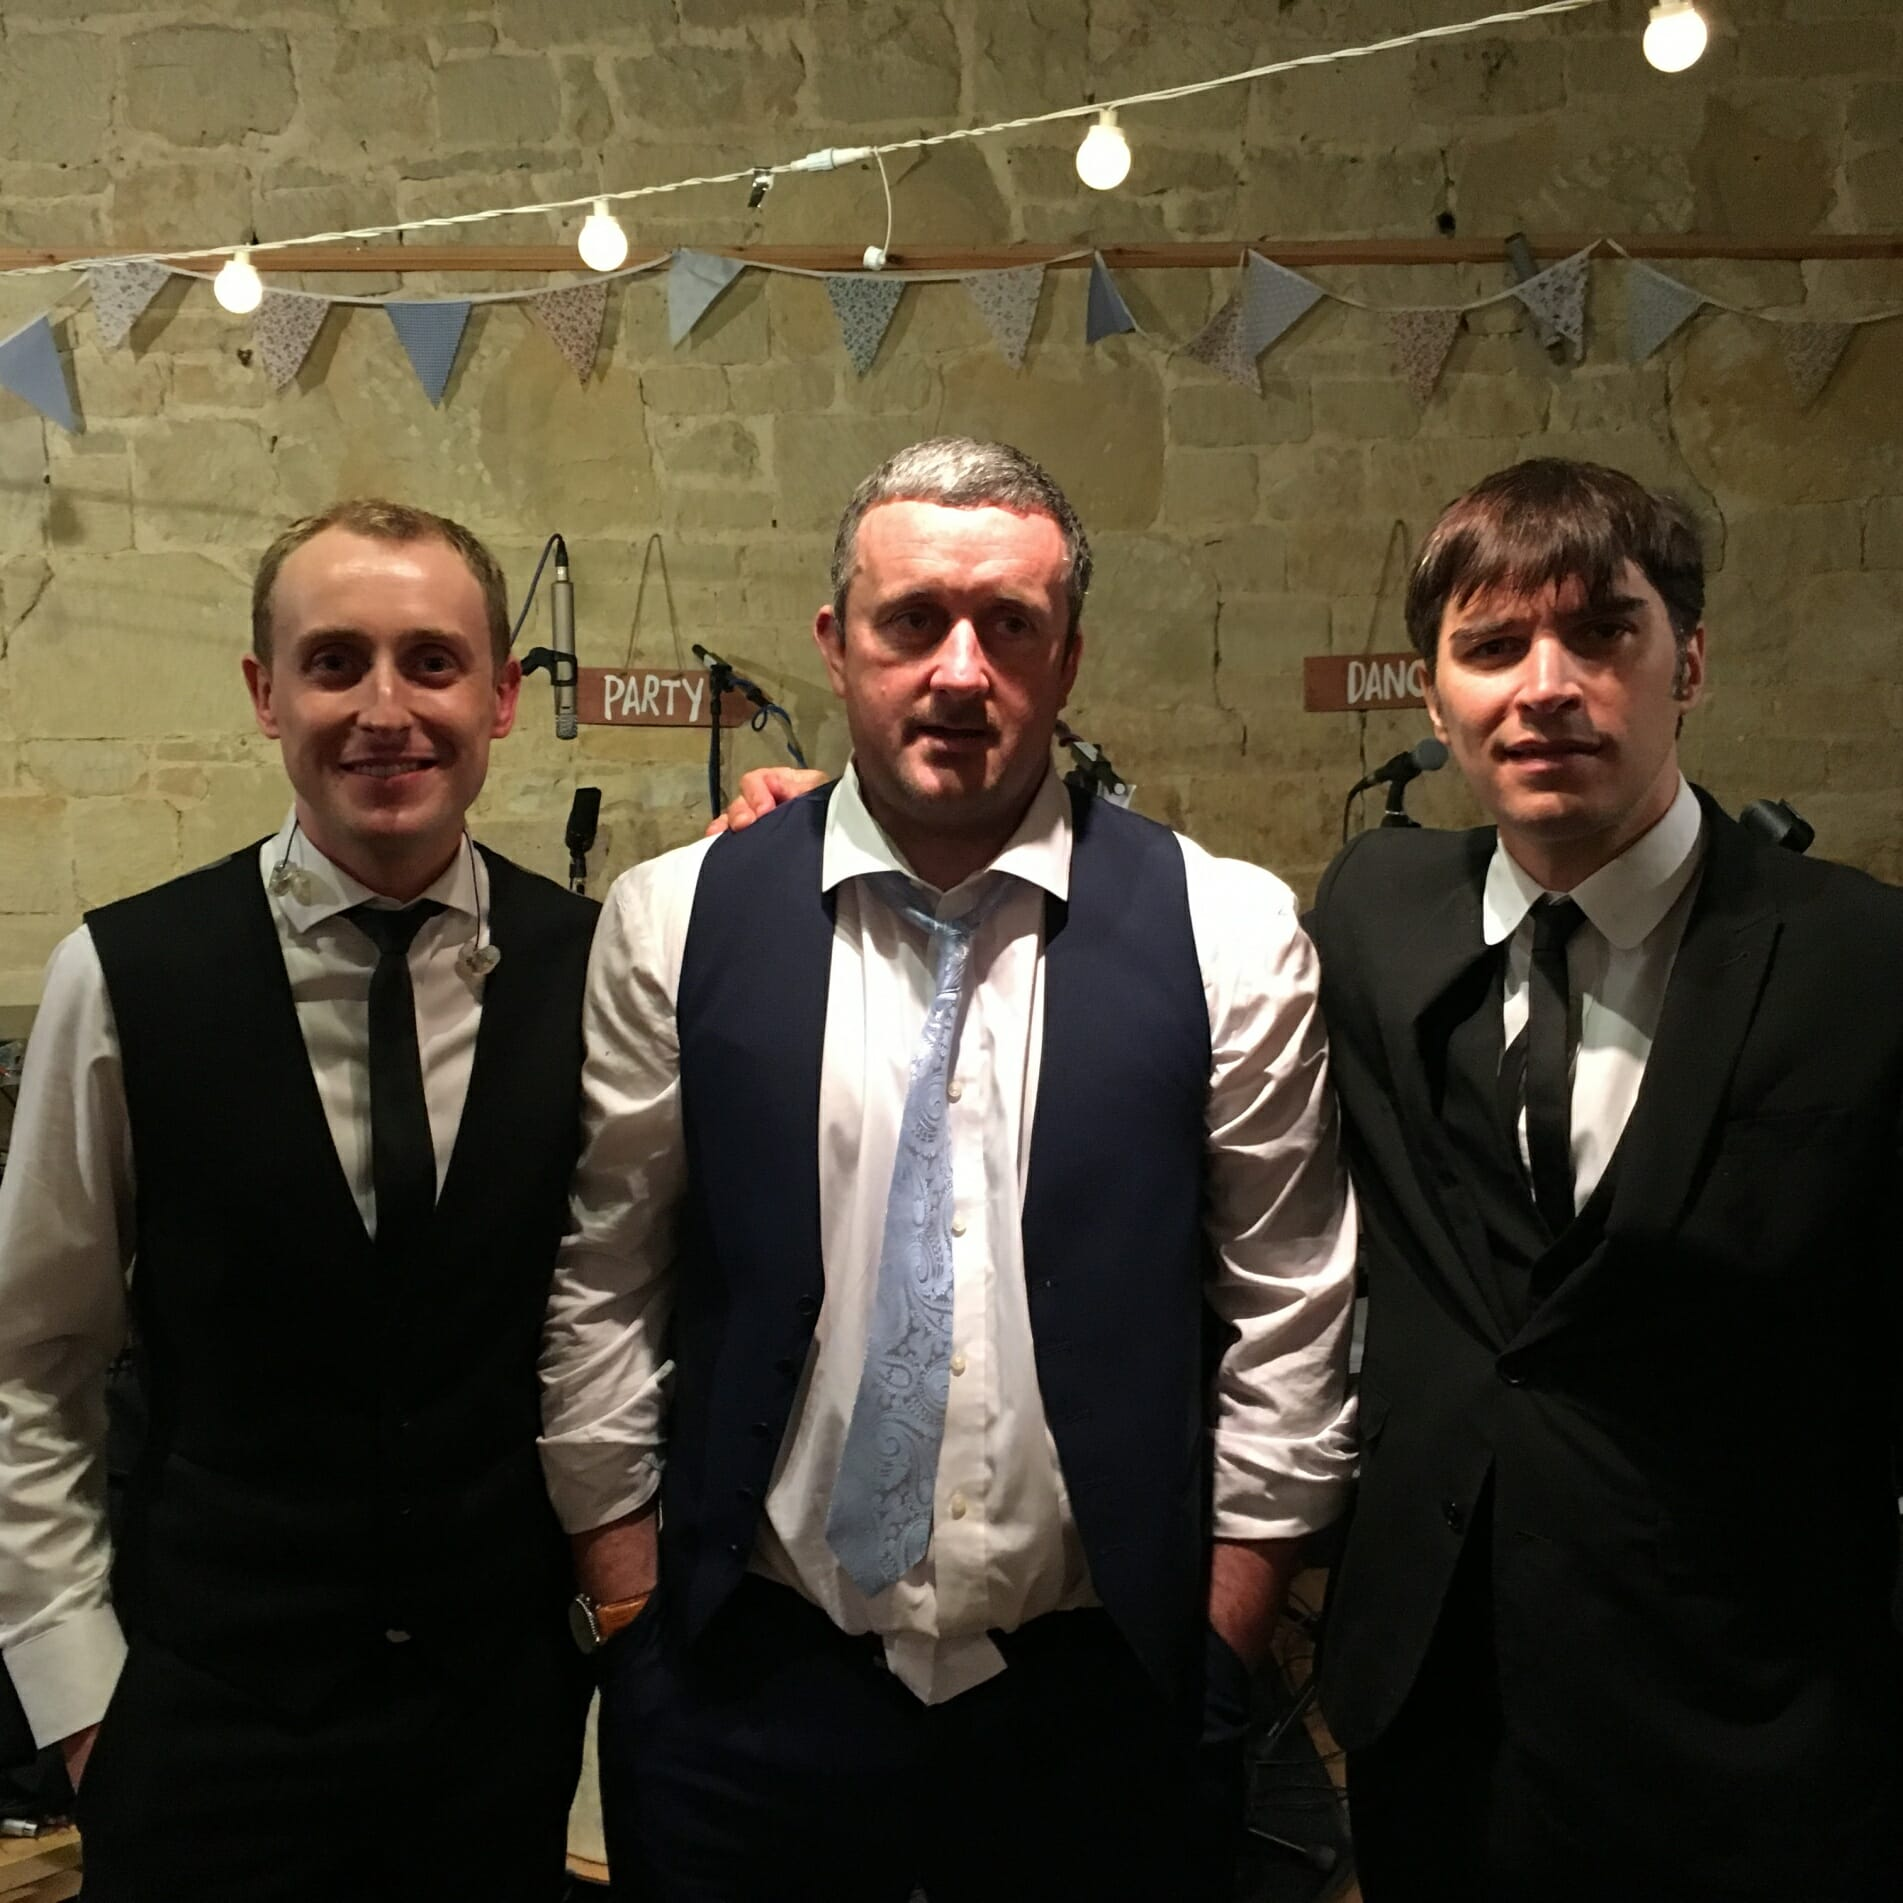 The Zoots, Zoots band, Band in Wiltshire, Wedding band Wtilshire, Zoots Party band, Band in Salisbury, Band at ashleywood Farm,